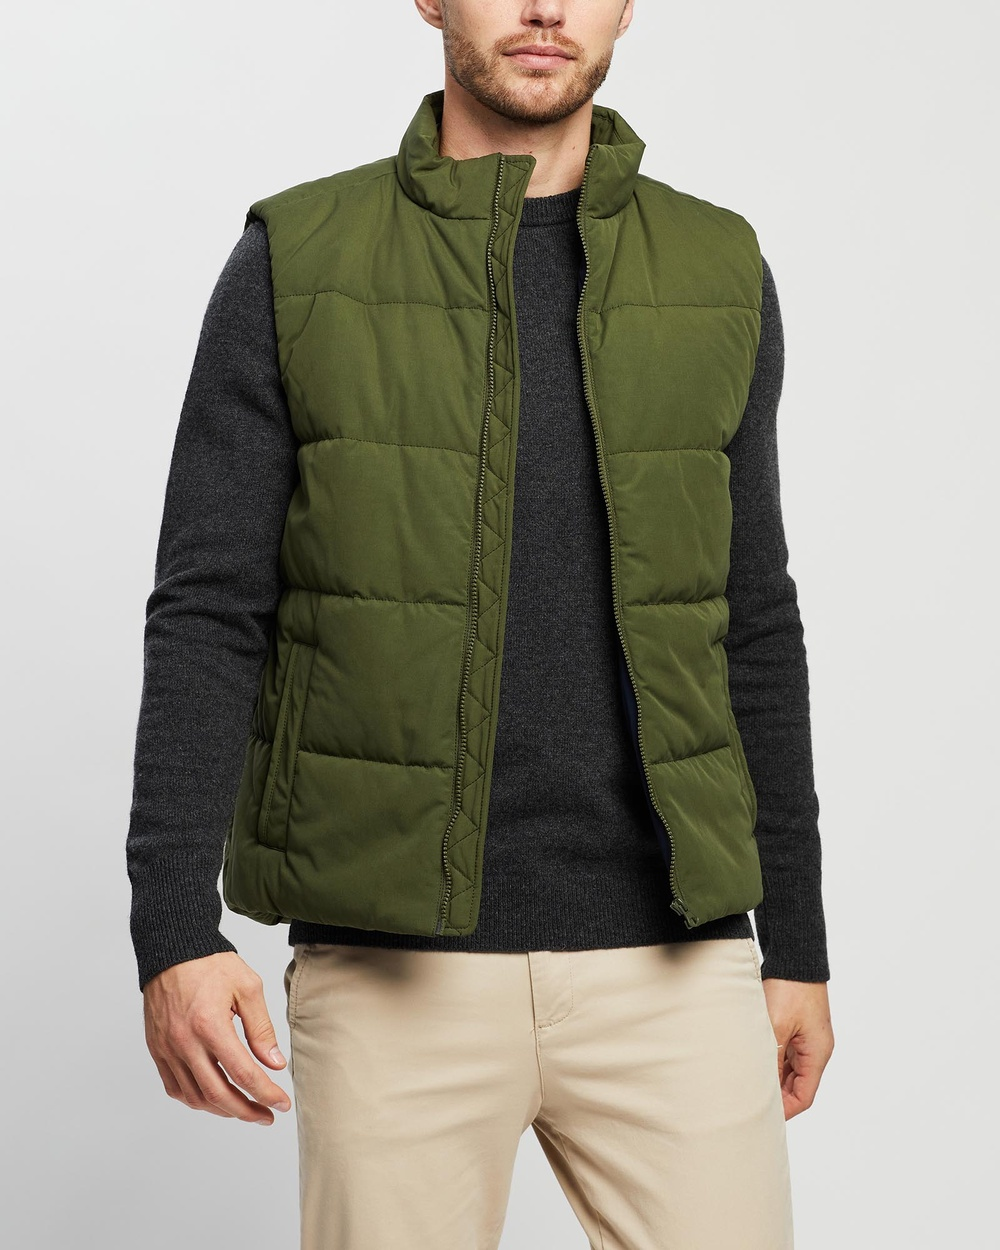 3 Wise Men The Downer Puffer Vest Coats & Jackets Army Green